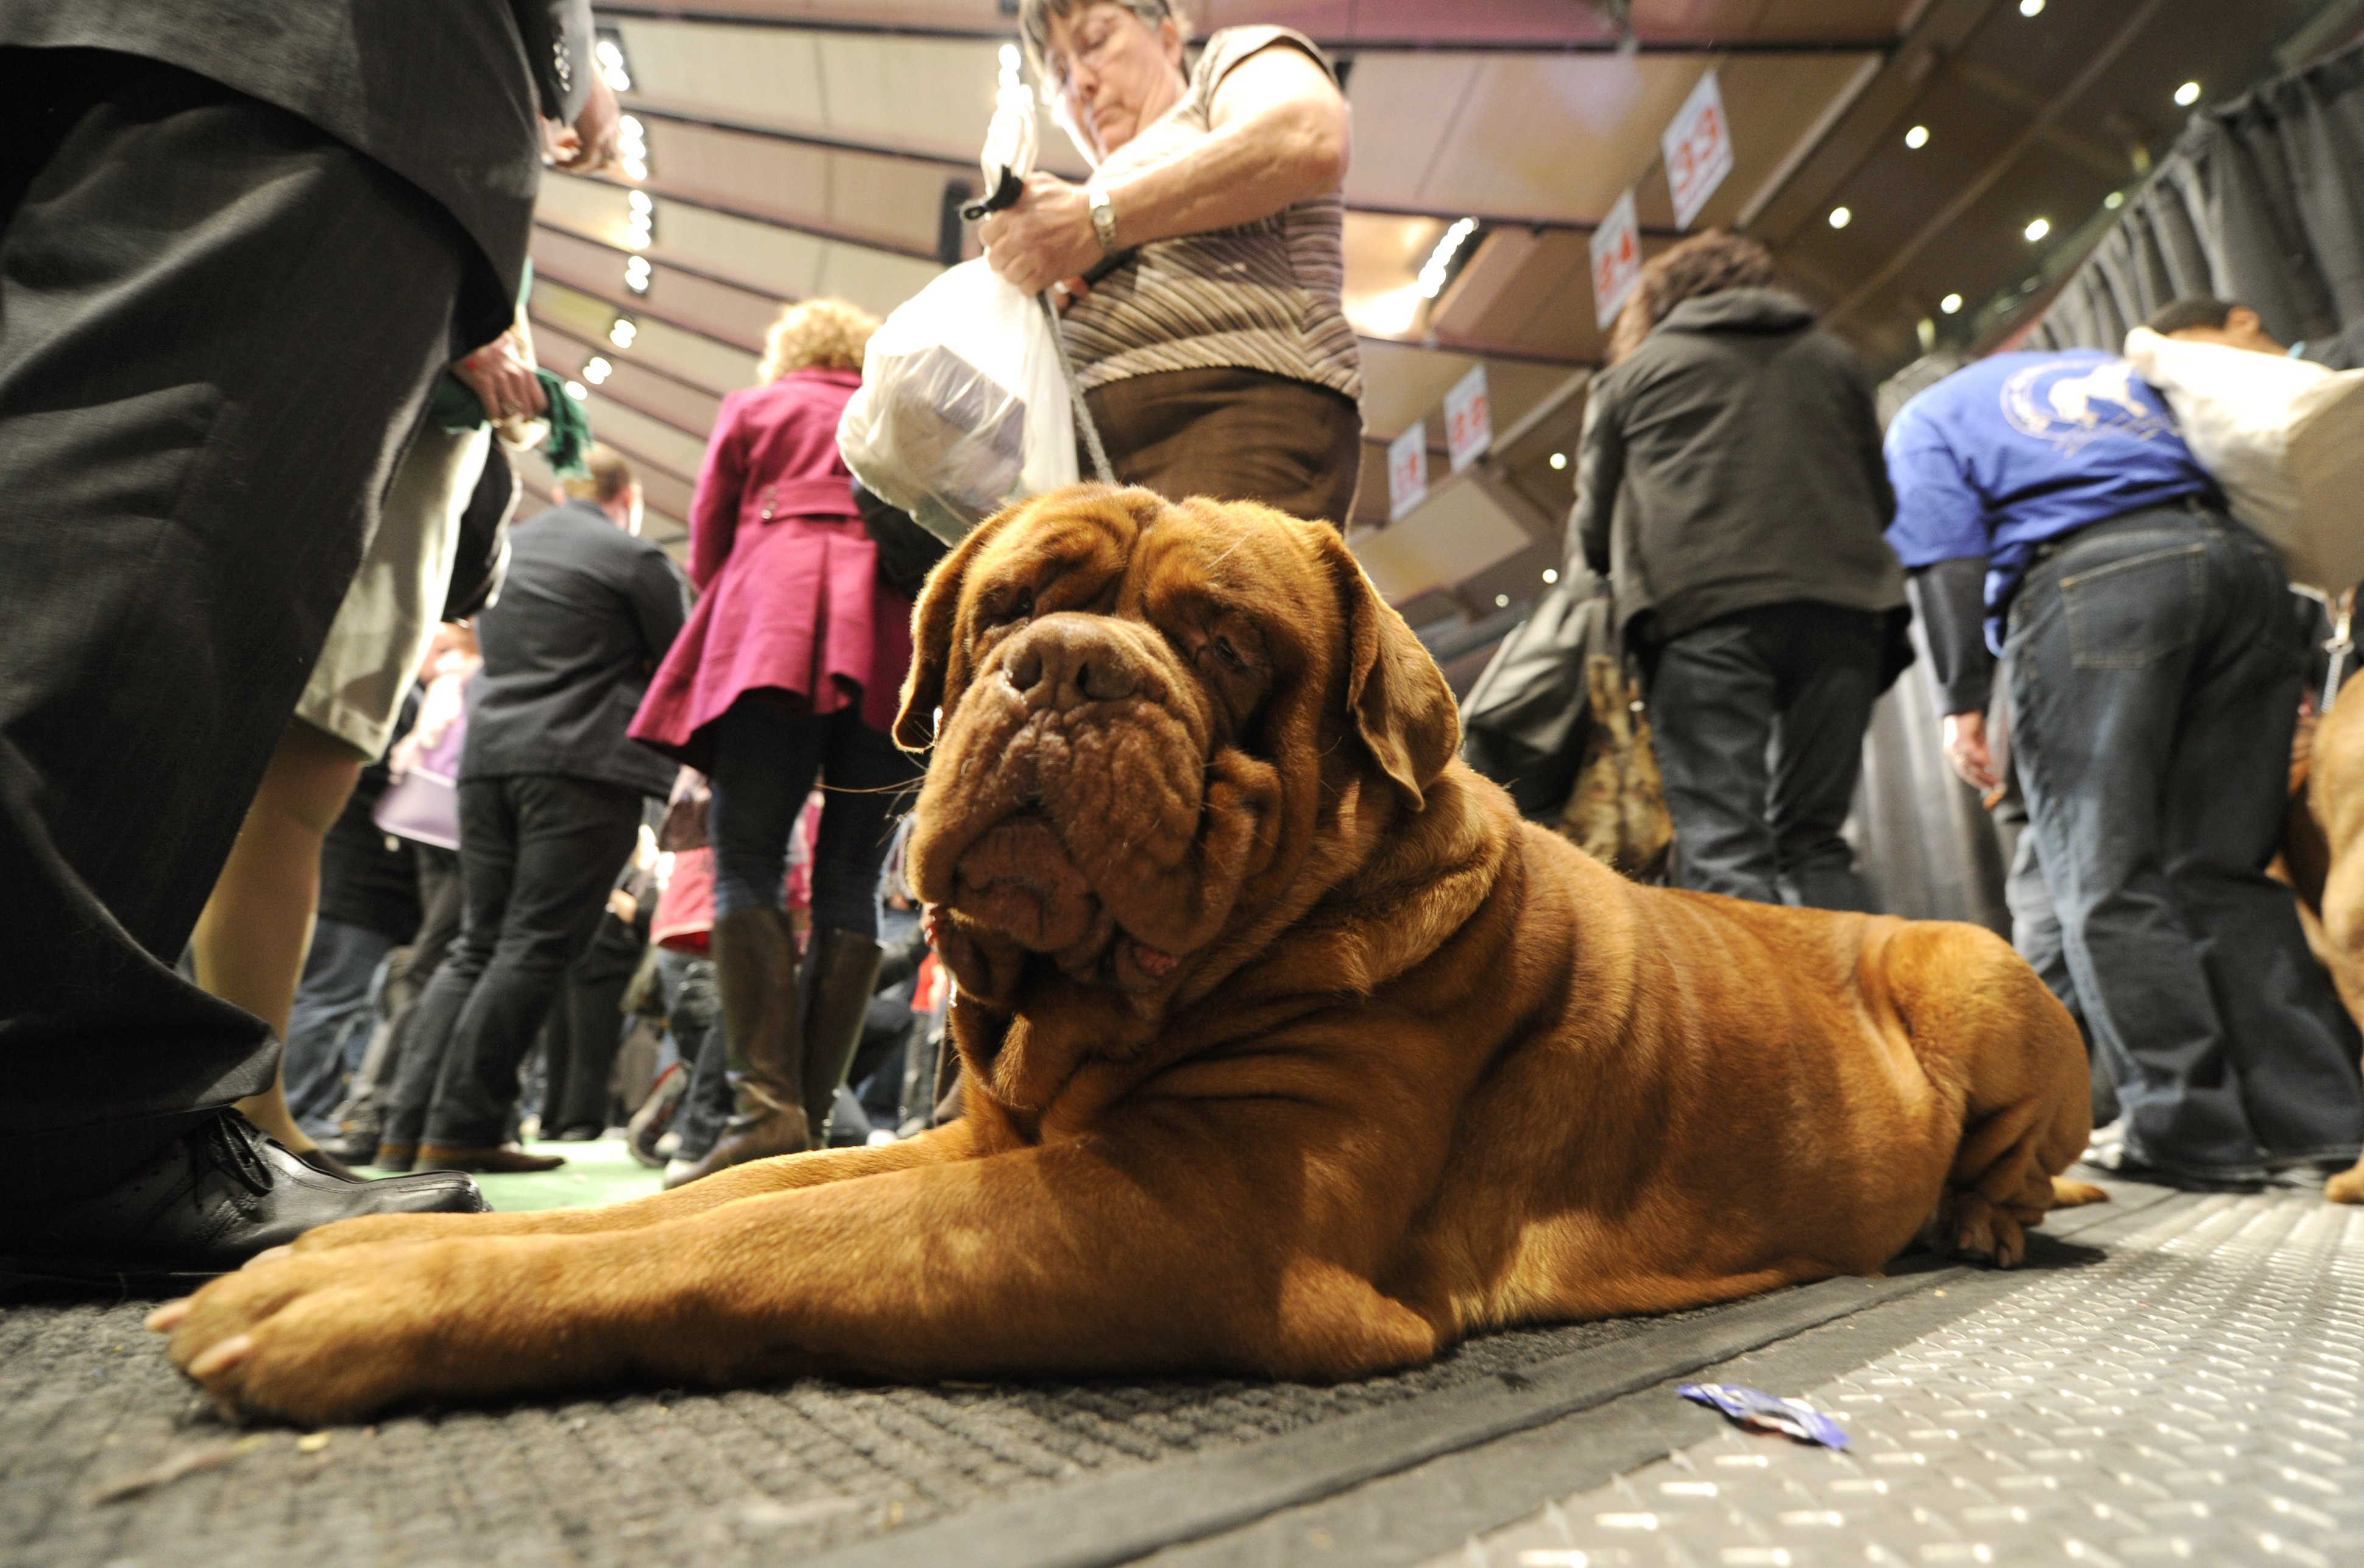 A Dogue de Bordeaux isn't fazed by all the attention.